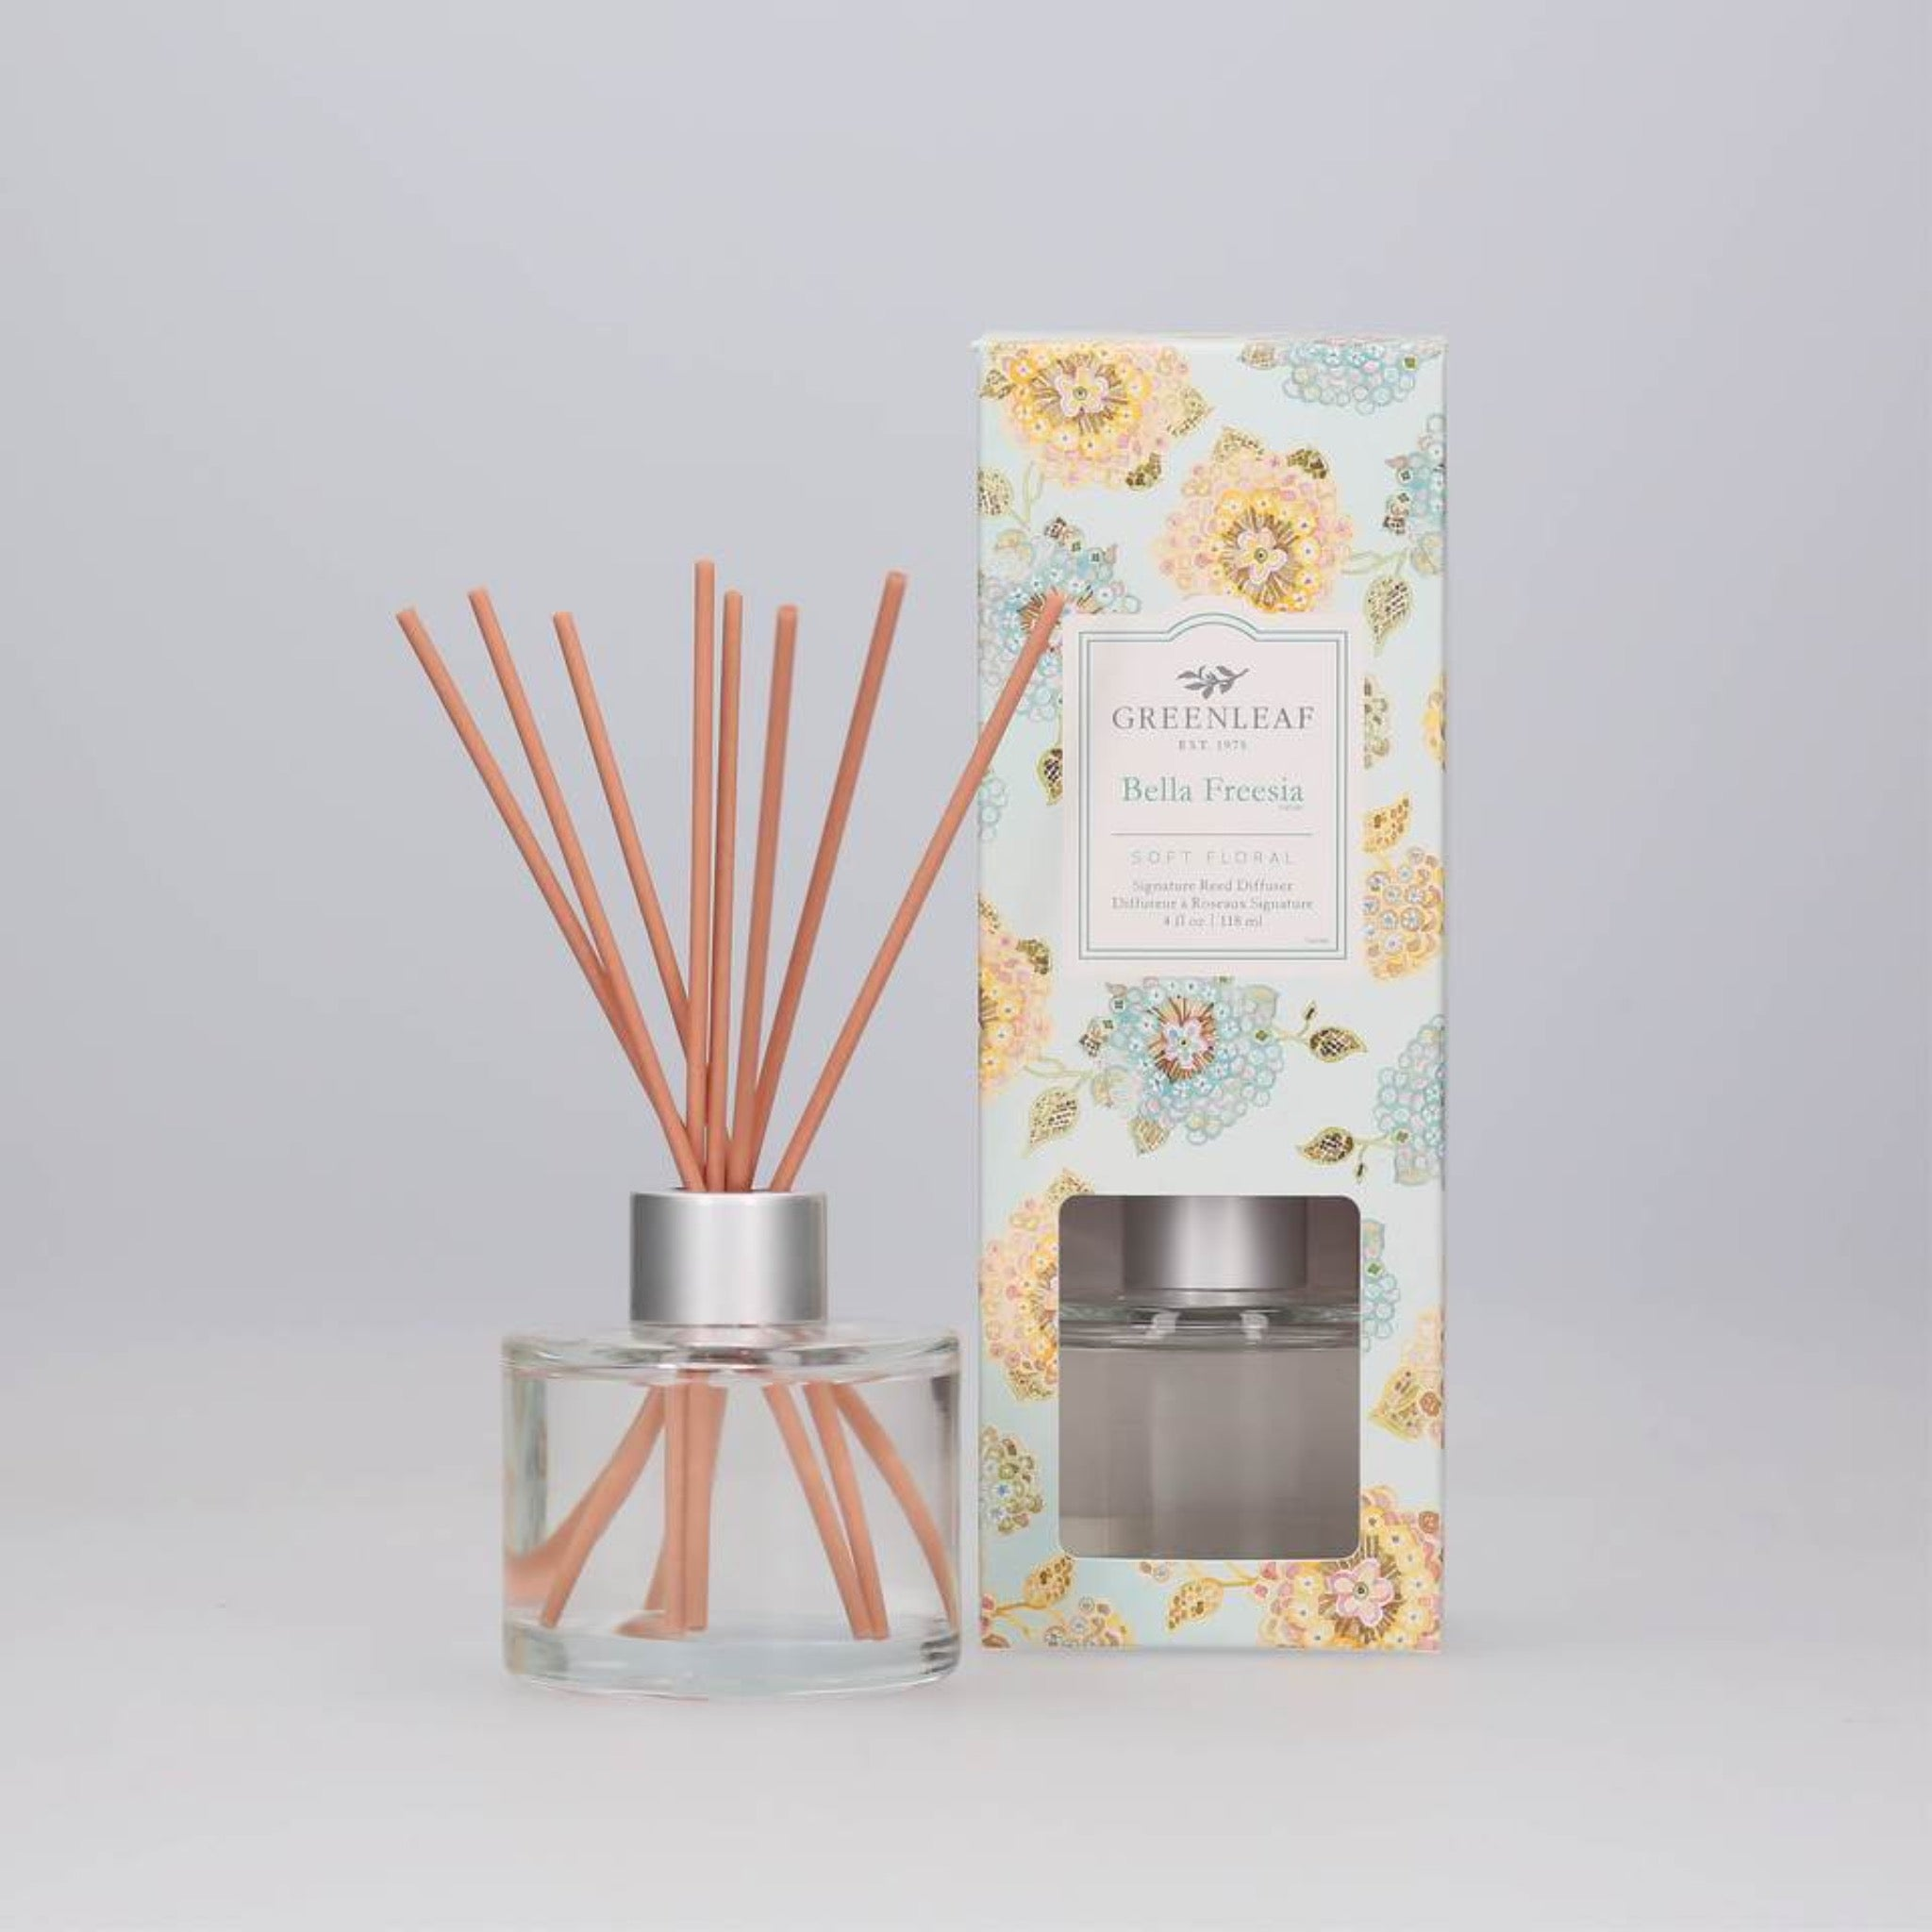 Greenleaf Reed Diffuser Signature